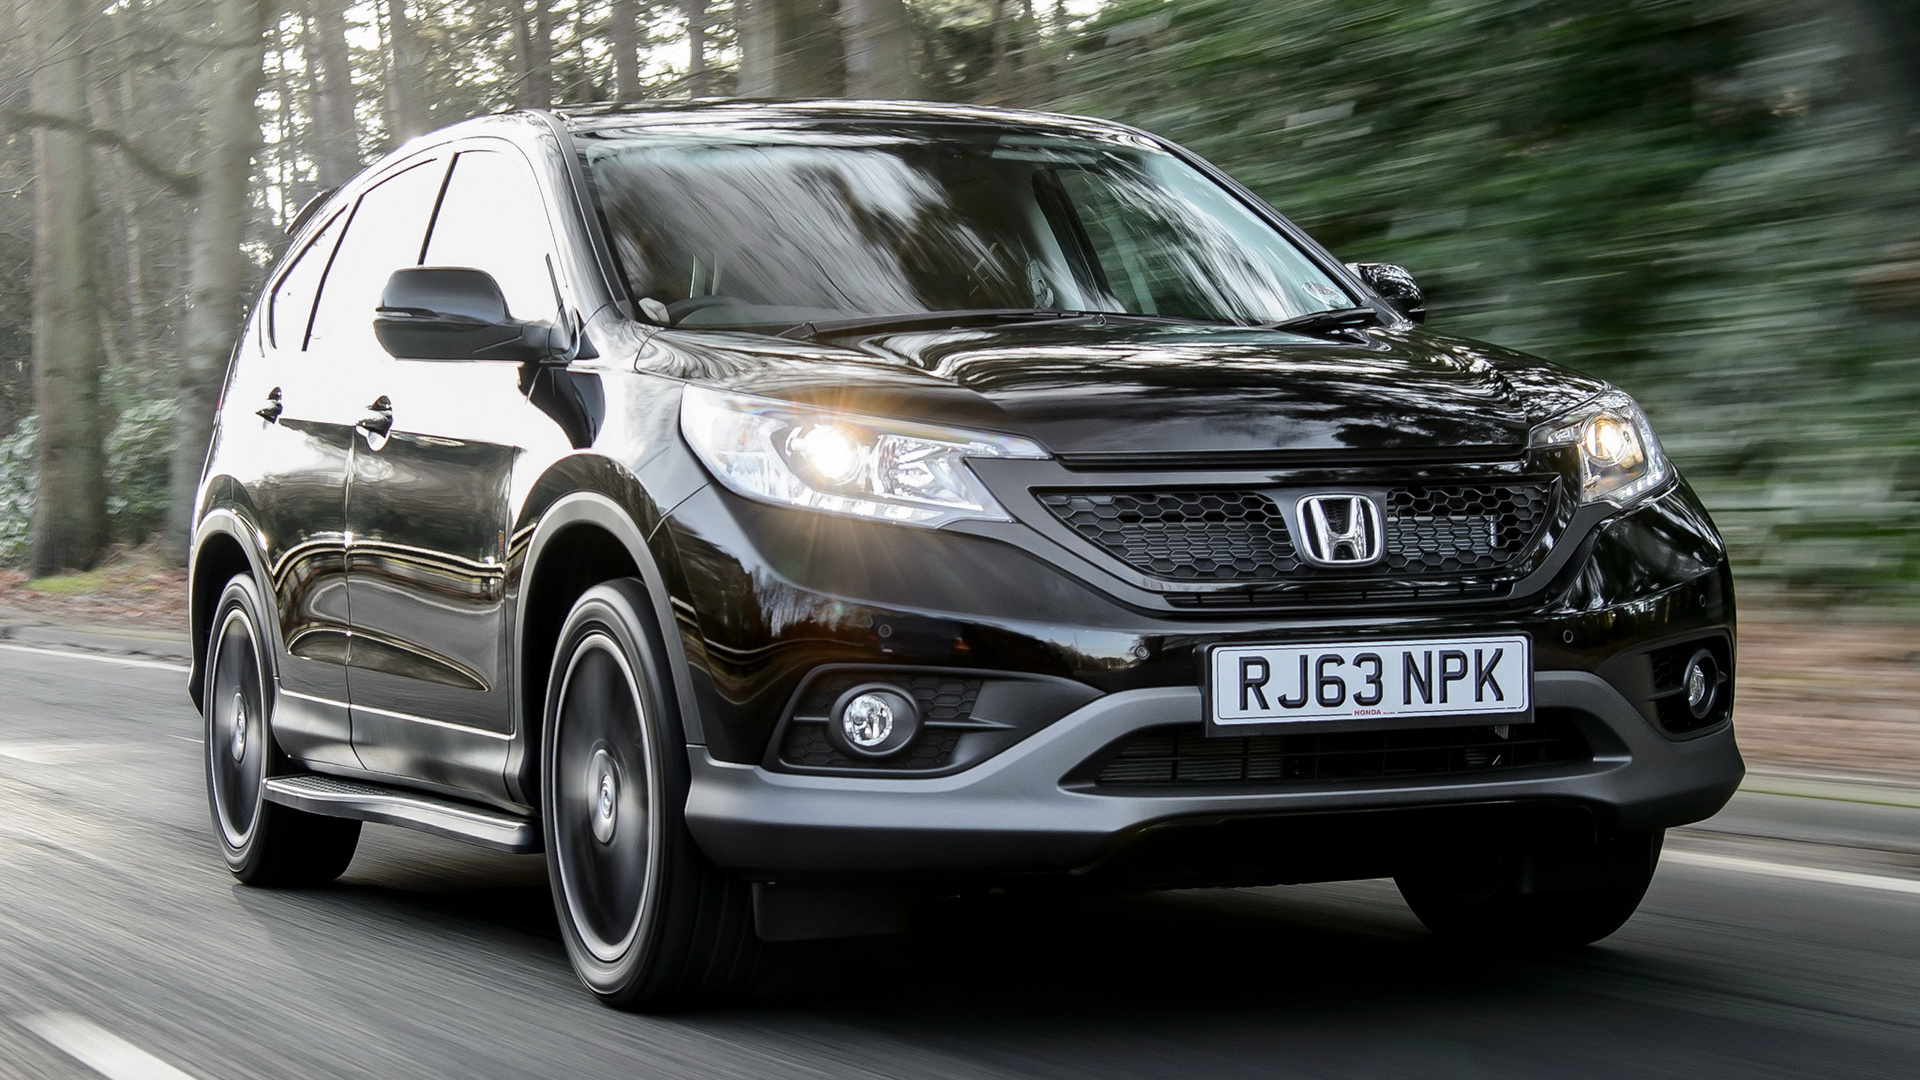 Honda CR-V Black (2014) Wallpapers and HD Images - Car Pixel